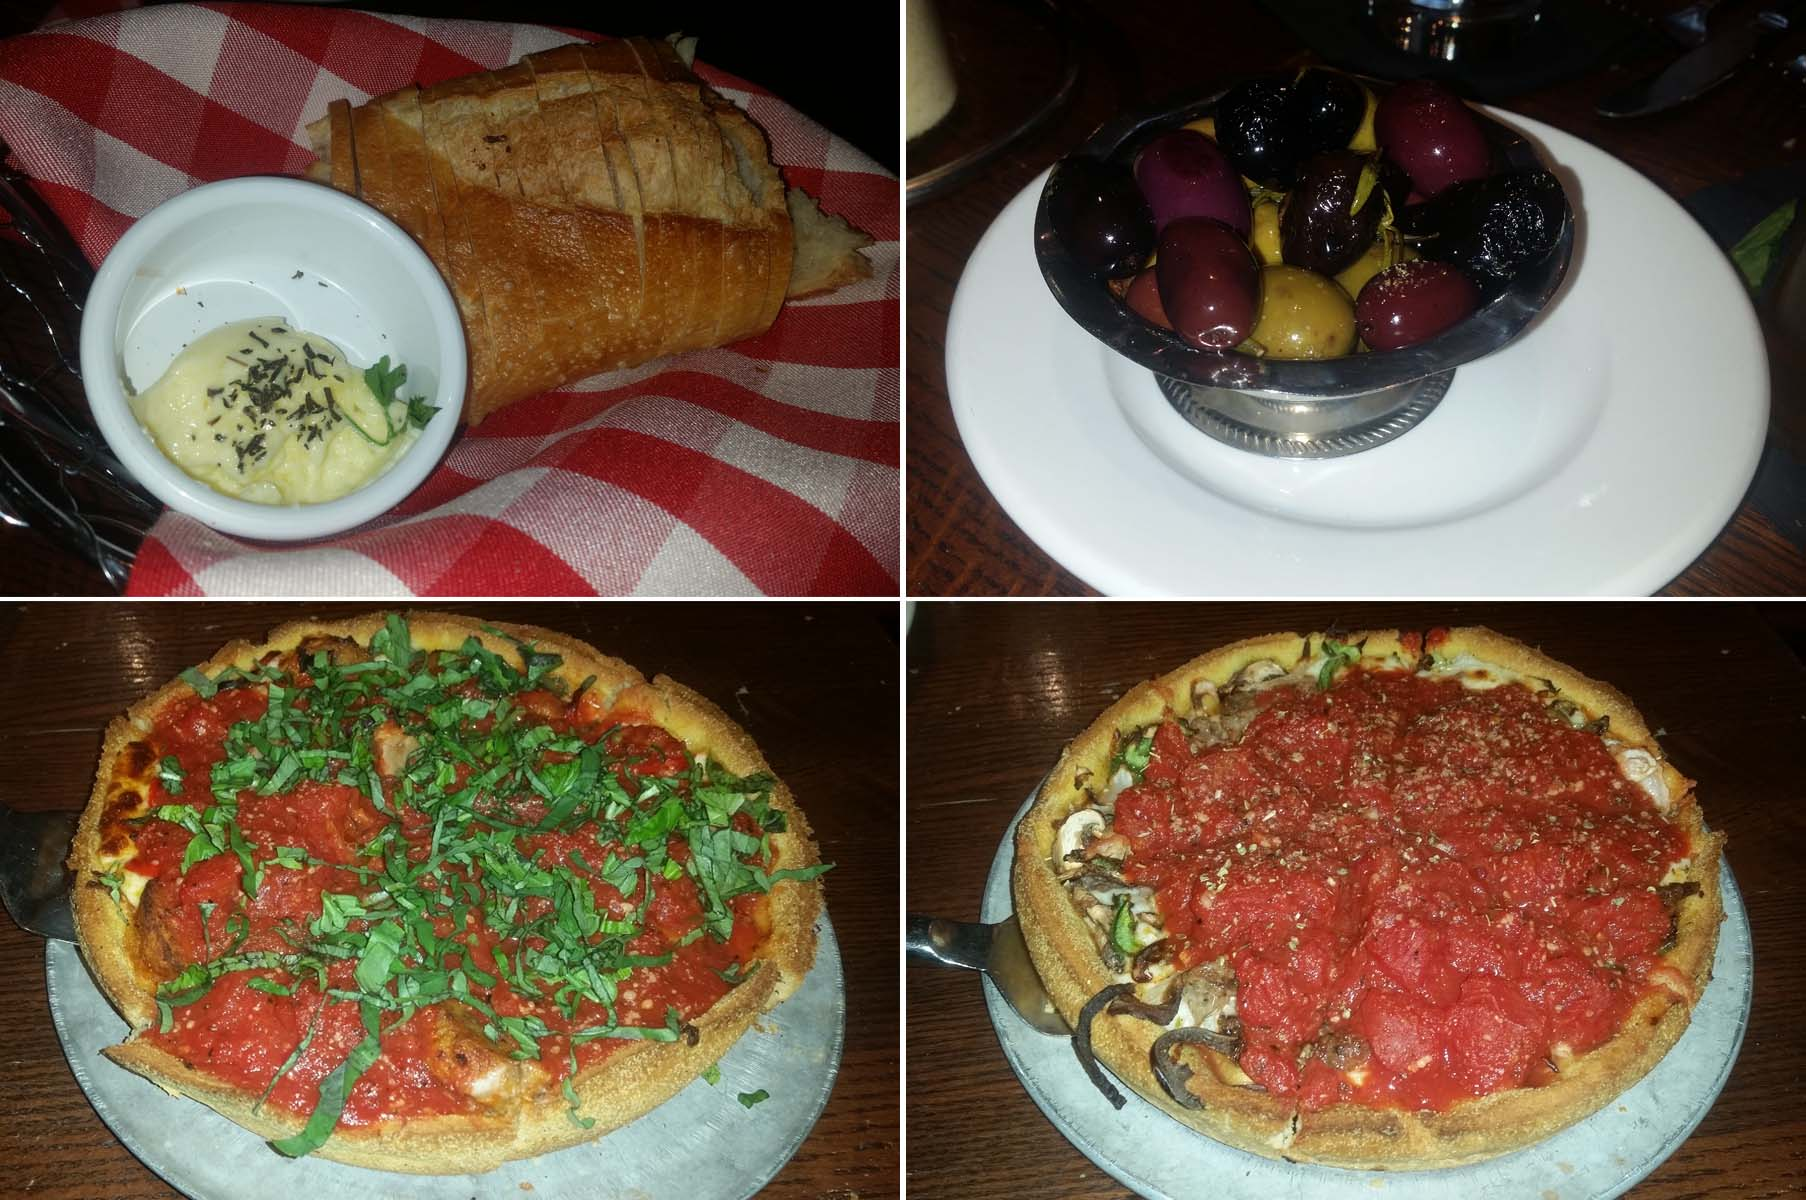 Dishes at Pi Pizzeria include garlic bread (clockwise from top left), olives, the South Side Classico deep-dish pizza and the Kirkwood deep-dish pizza. (Photos: Mark Heckathorn/DC on Heels)